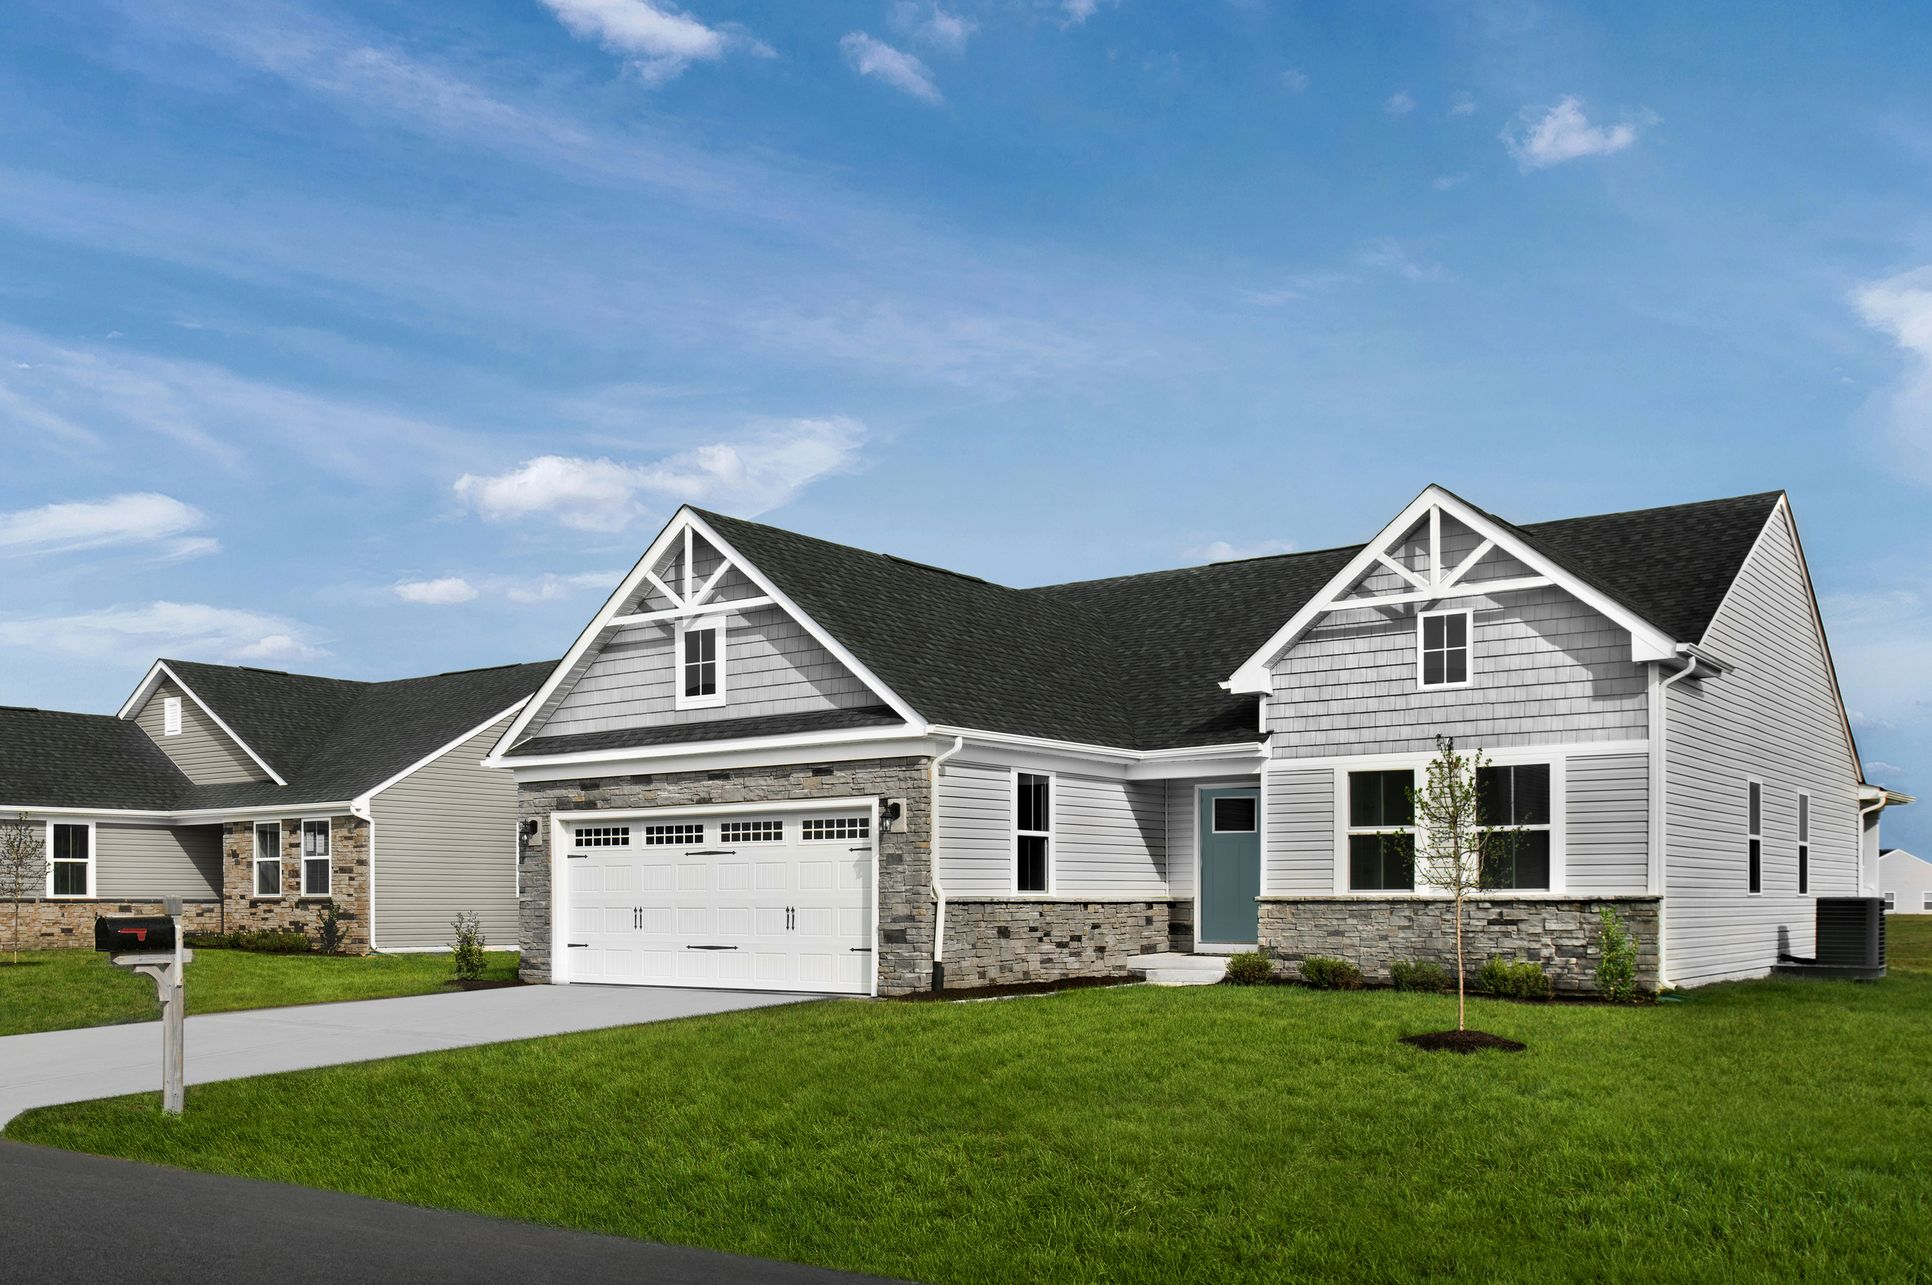 Grand Opening: Starting your forever, today:Introducing a new active adult community; 1-story homes w/ no yard work & top-of-the-line amenities. Located in New Kent w/ quick access to Richmond & Williamsburg.Schedule your visit today!